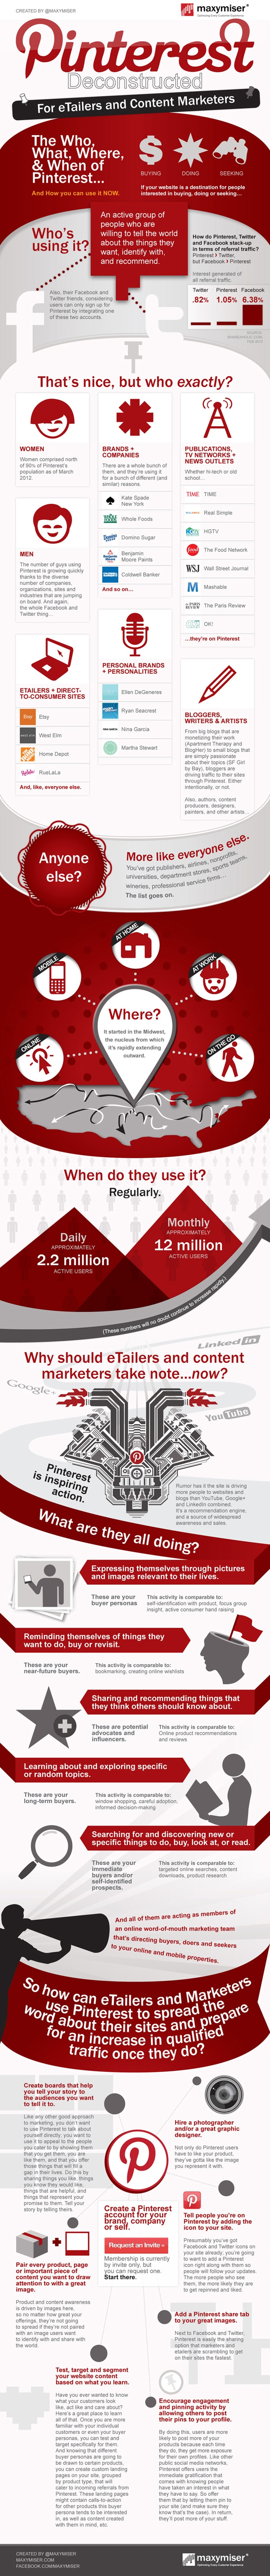 Pinterest Deconstructed: Guide To Content Marketing [Infographic]